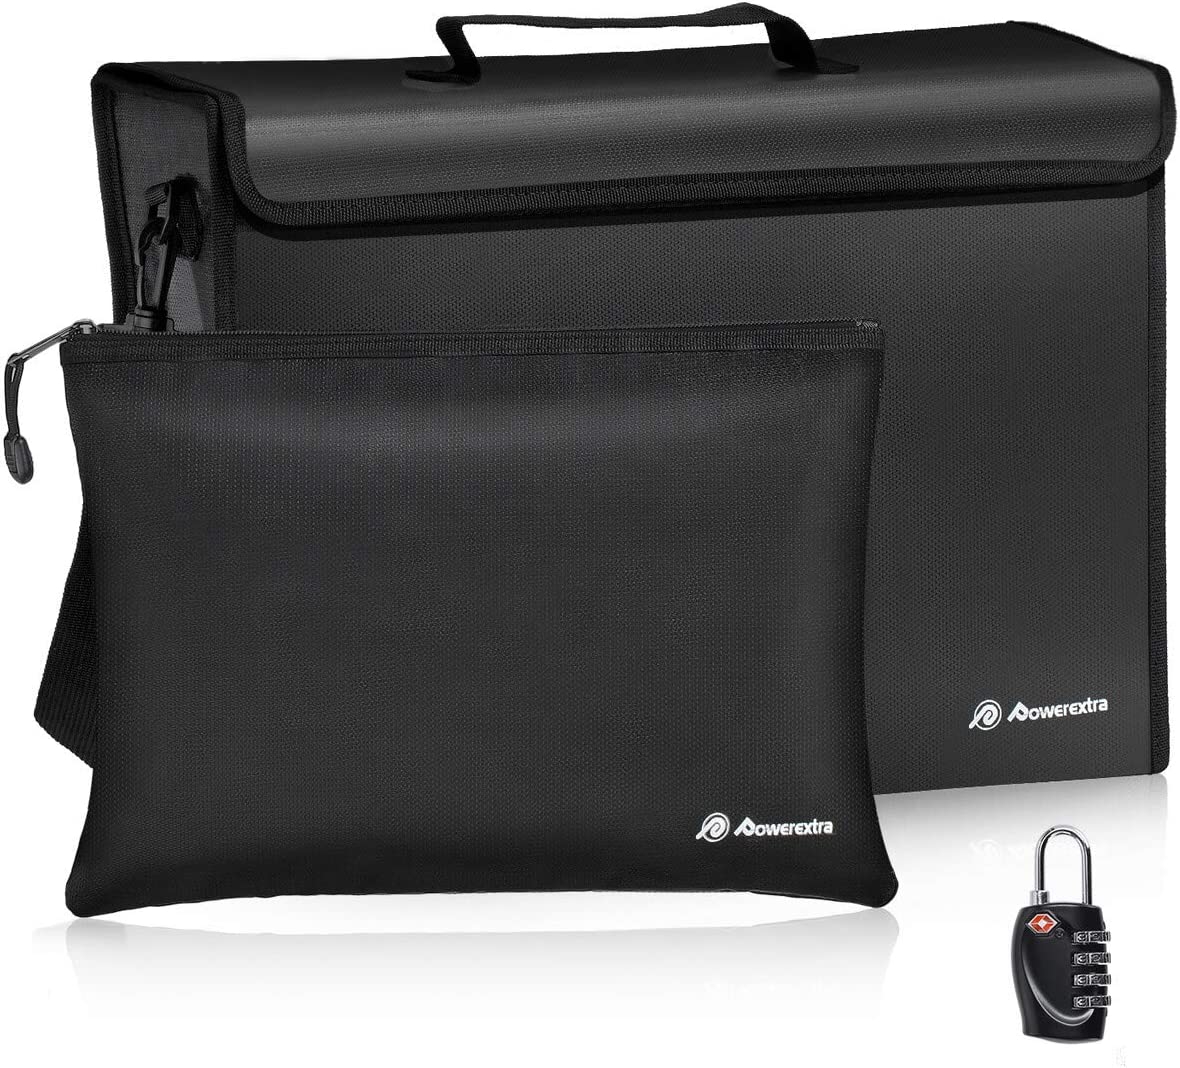 Powerextra Fireproof Document Bags File 17 x 12 x 5.8 inch Waterproof Fire Safe Bag with Lock for A4 Document Holder 13.4 x 9.4 inch and Small Fireproof Bag Cash Tablet and Valuables